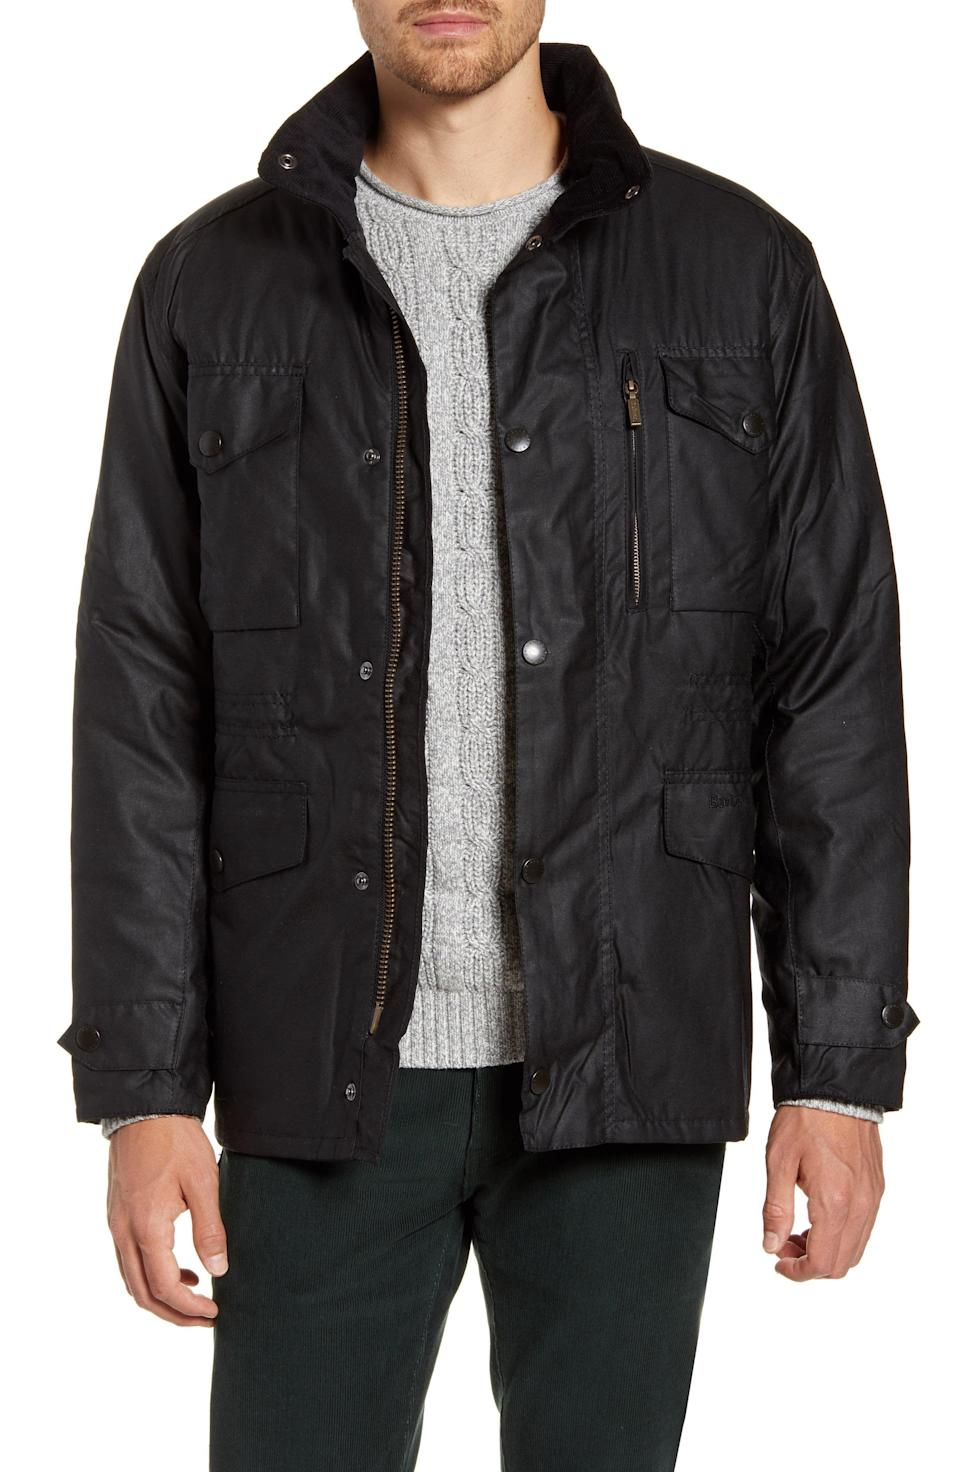 """<p><strong>BARBOUR</strong></p><p>nordstrom.com</p><p><a href=""""https://go.redirectingat.com?id=74968X1596630&url=https%3A%2F%2Fwww.nordstrom.com%2Fs%2Fbarbour-sapper-regular-fit-weatherproof-waxed-cotton-jacket%2F3362056&sref=https%3A%2F%2Fwww.townandcountrymag.com%2Fstyle%2Ffashion-trends%2Fg36557314%2Fnordstrom-half-yearly-sale-may-2021%2F"""" rel=""""nofollow noopener"""" target=""""_blank"""" data-ylk=""""slk:Shop Now"""" class=""""link rapid-noclick-resp"""">Shop Now</a></p><p>$297.50</p><p><em>Original Price: $425</em></p>"""